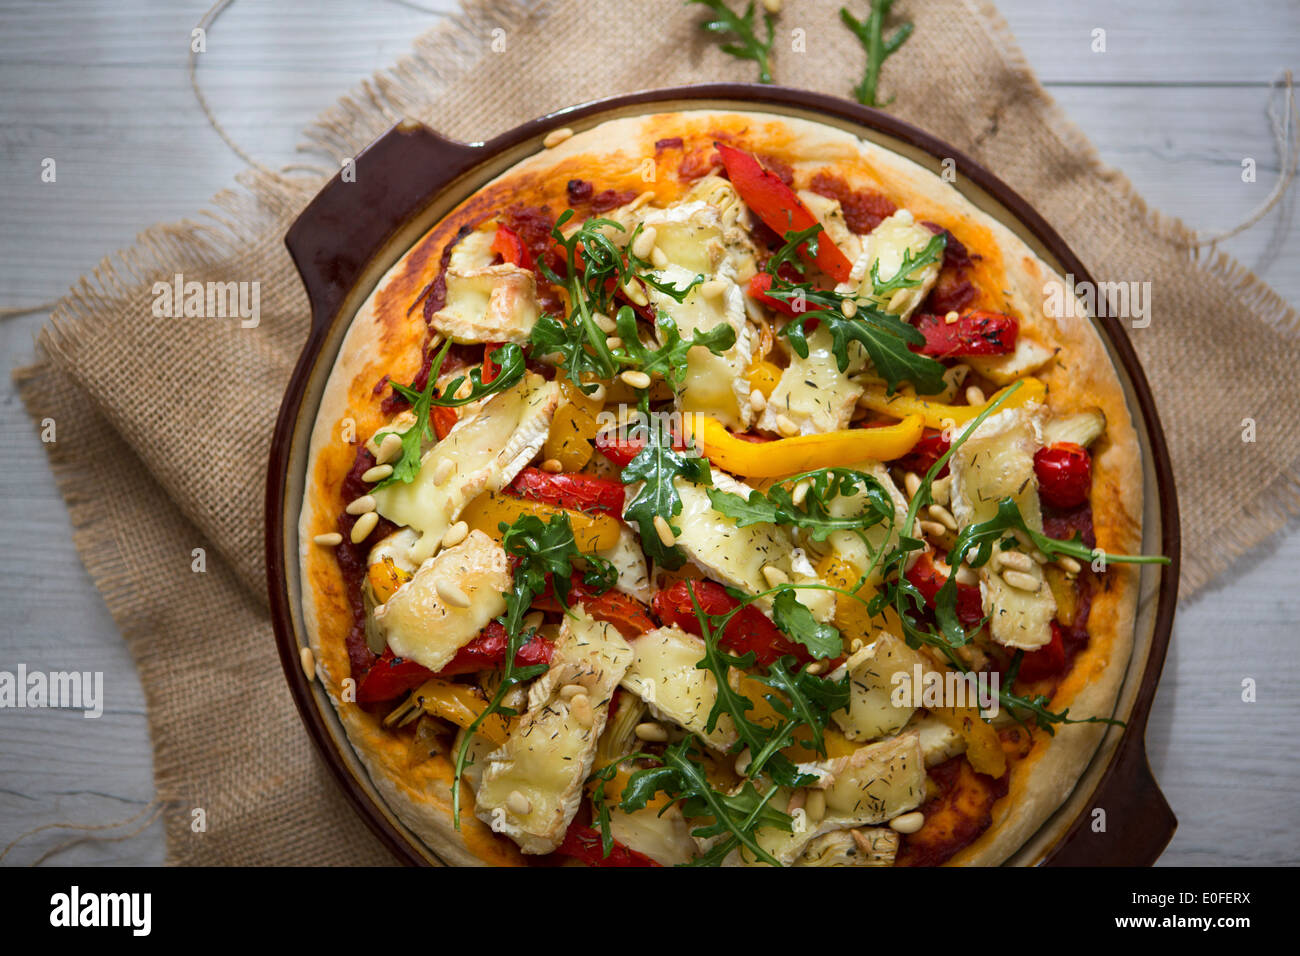 Homemade Vegetarian Pizza with Peppers, Brie & Rocket - Stock Image